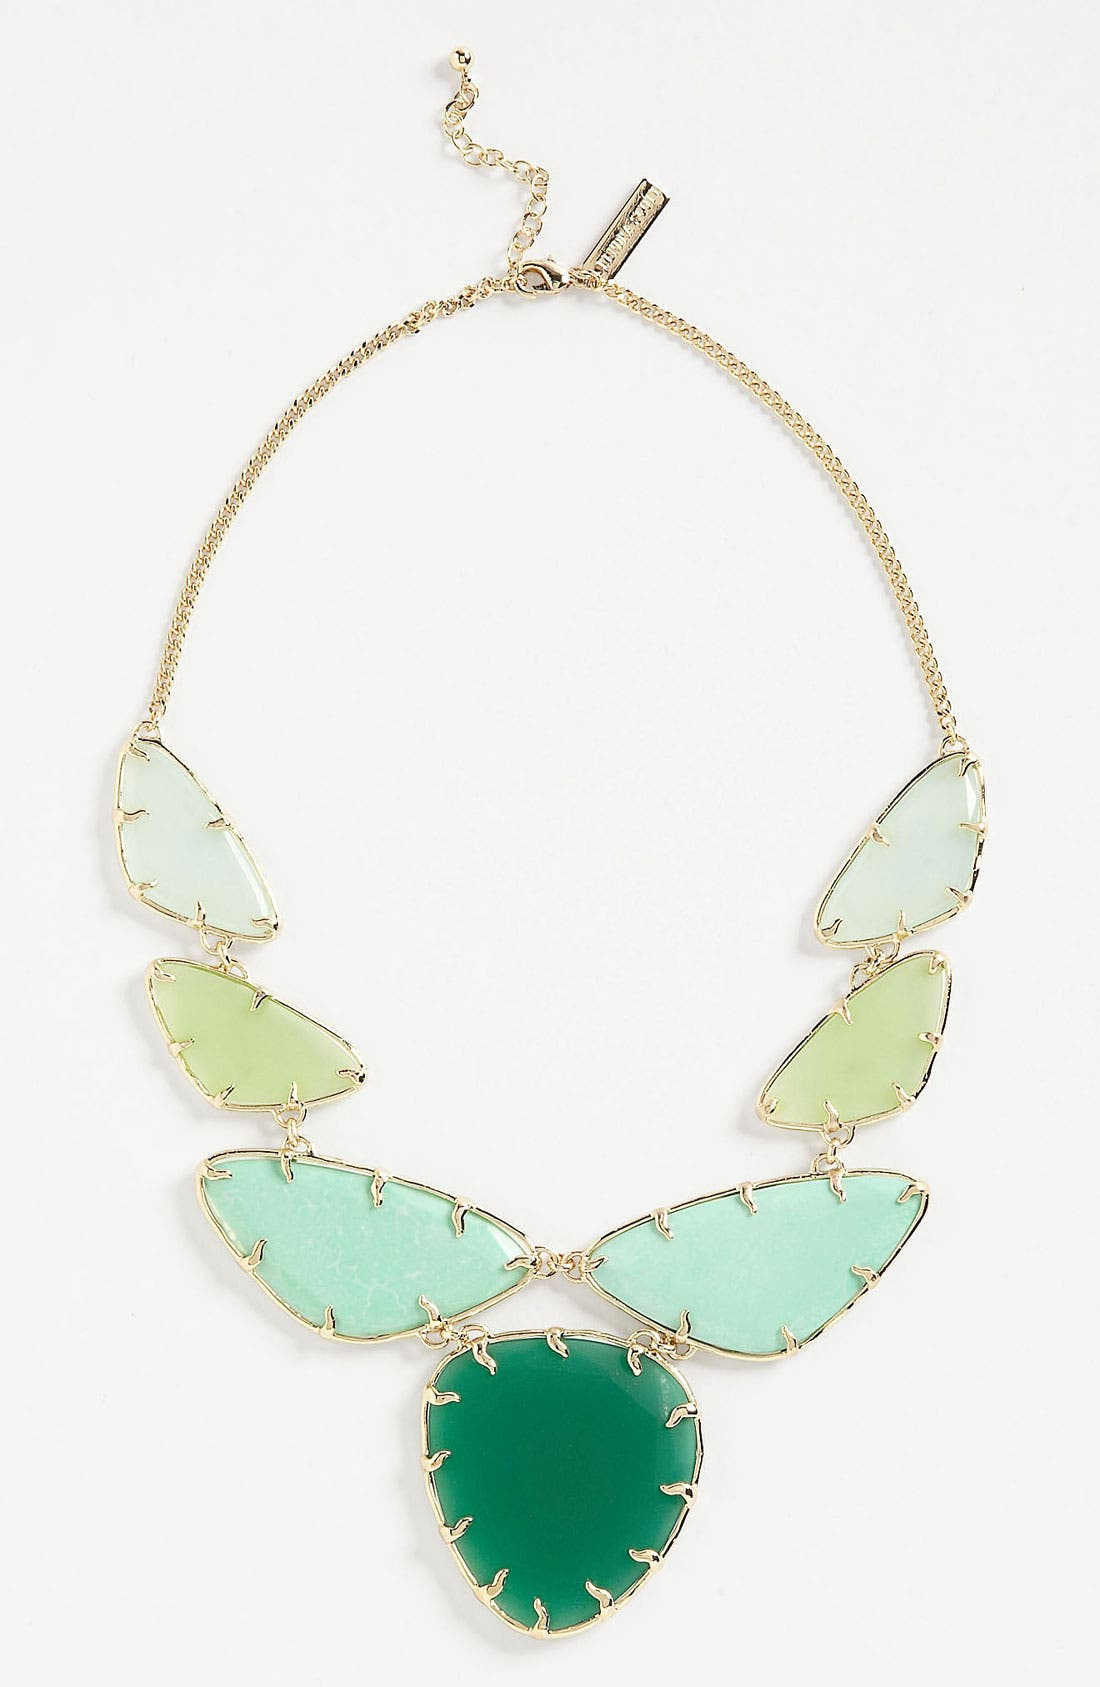 Main Image - Kendra Scott 'Marisol' Bib Necklace